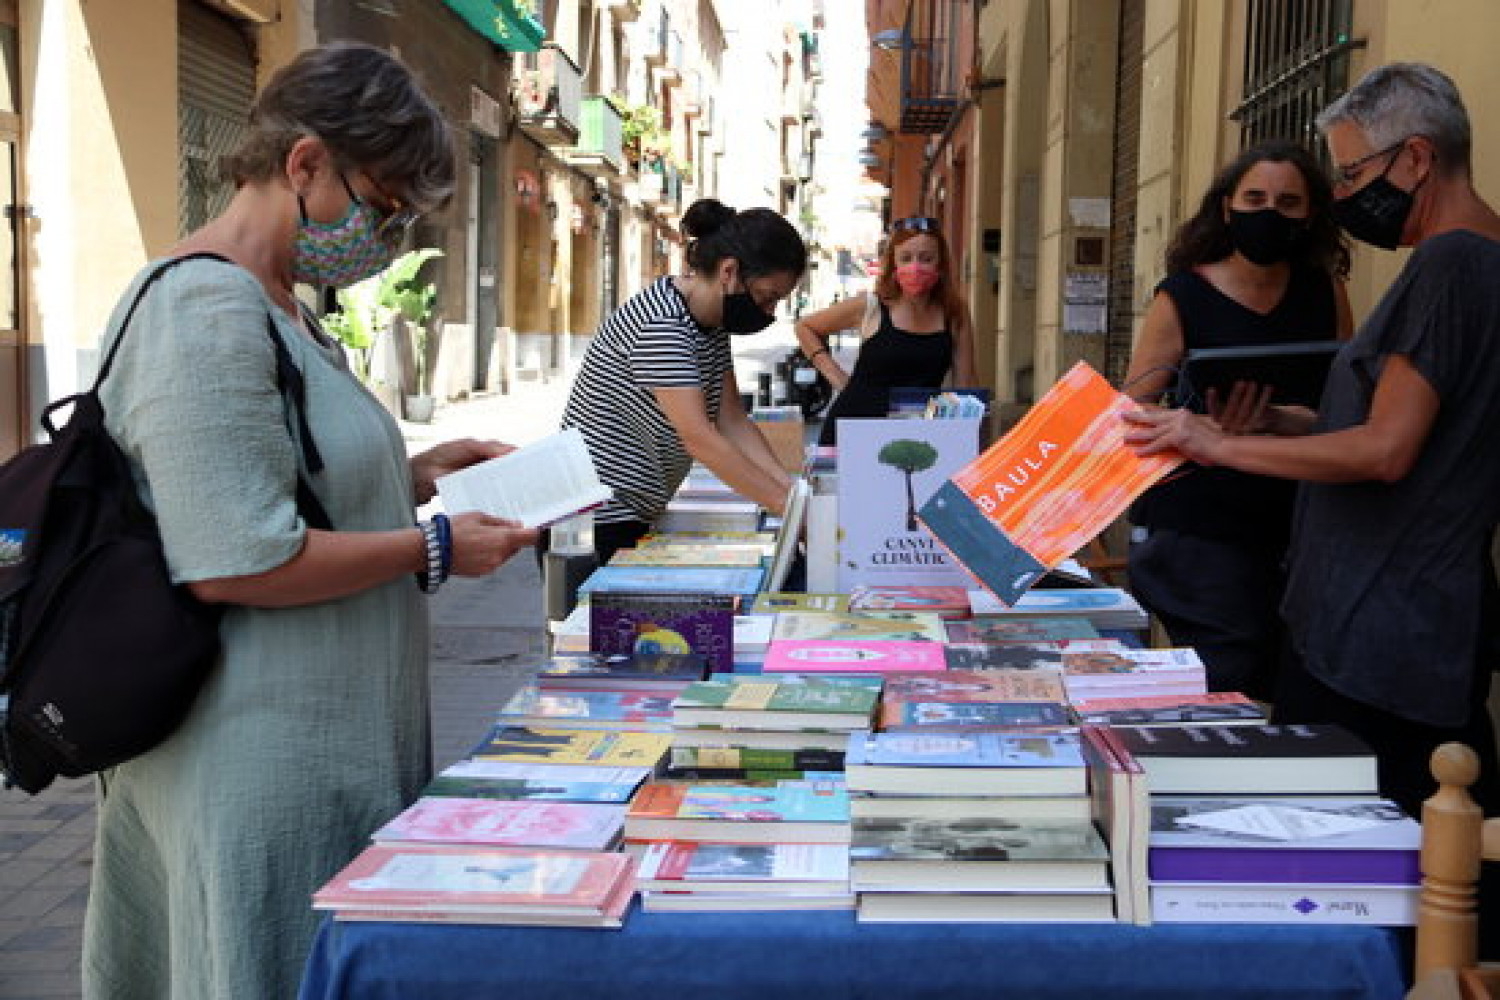 The stall of a book shop that specialises in children's books during the July Sant Jordi celebrations of 2020 (by Mar Vila)